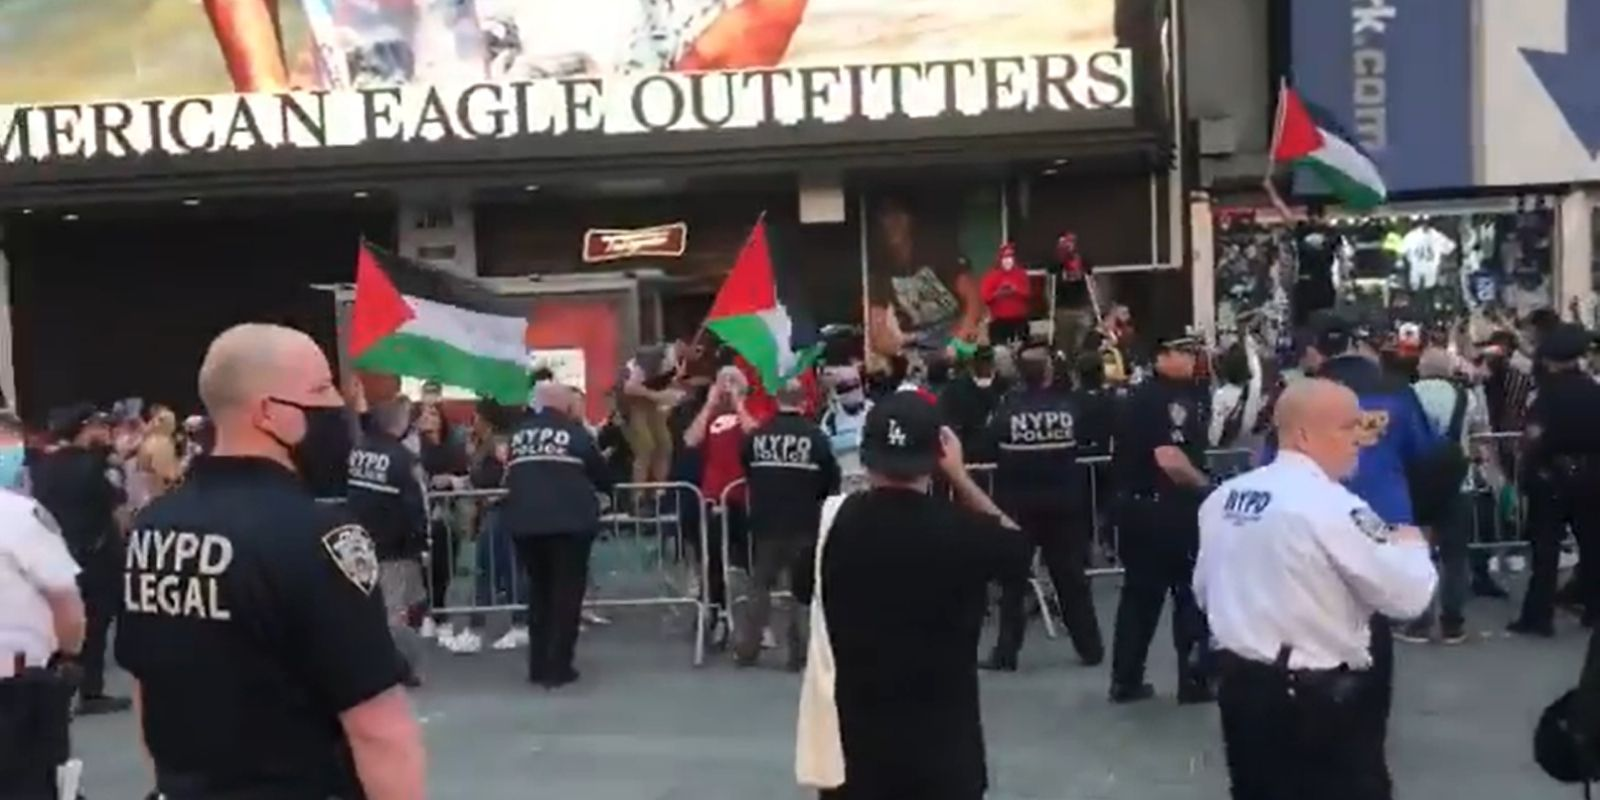 BREAKING: Suspect arrested and charged with hate crime assault after antisemitic attacks in Manhattan